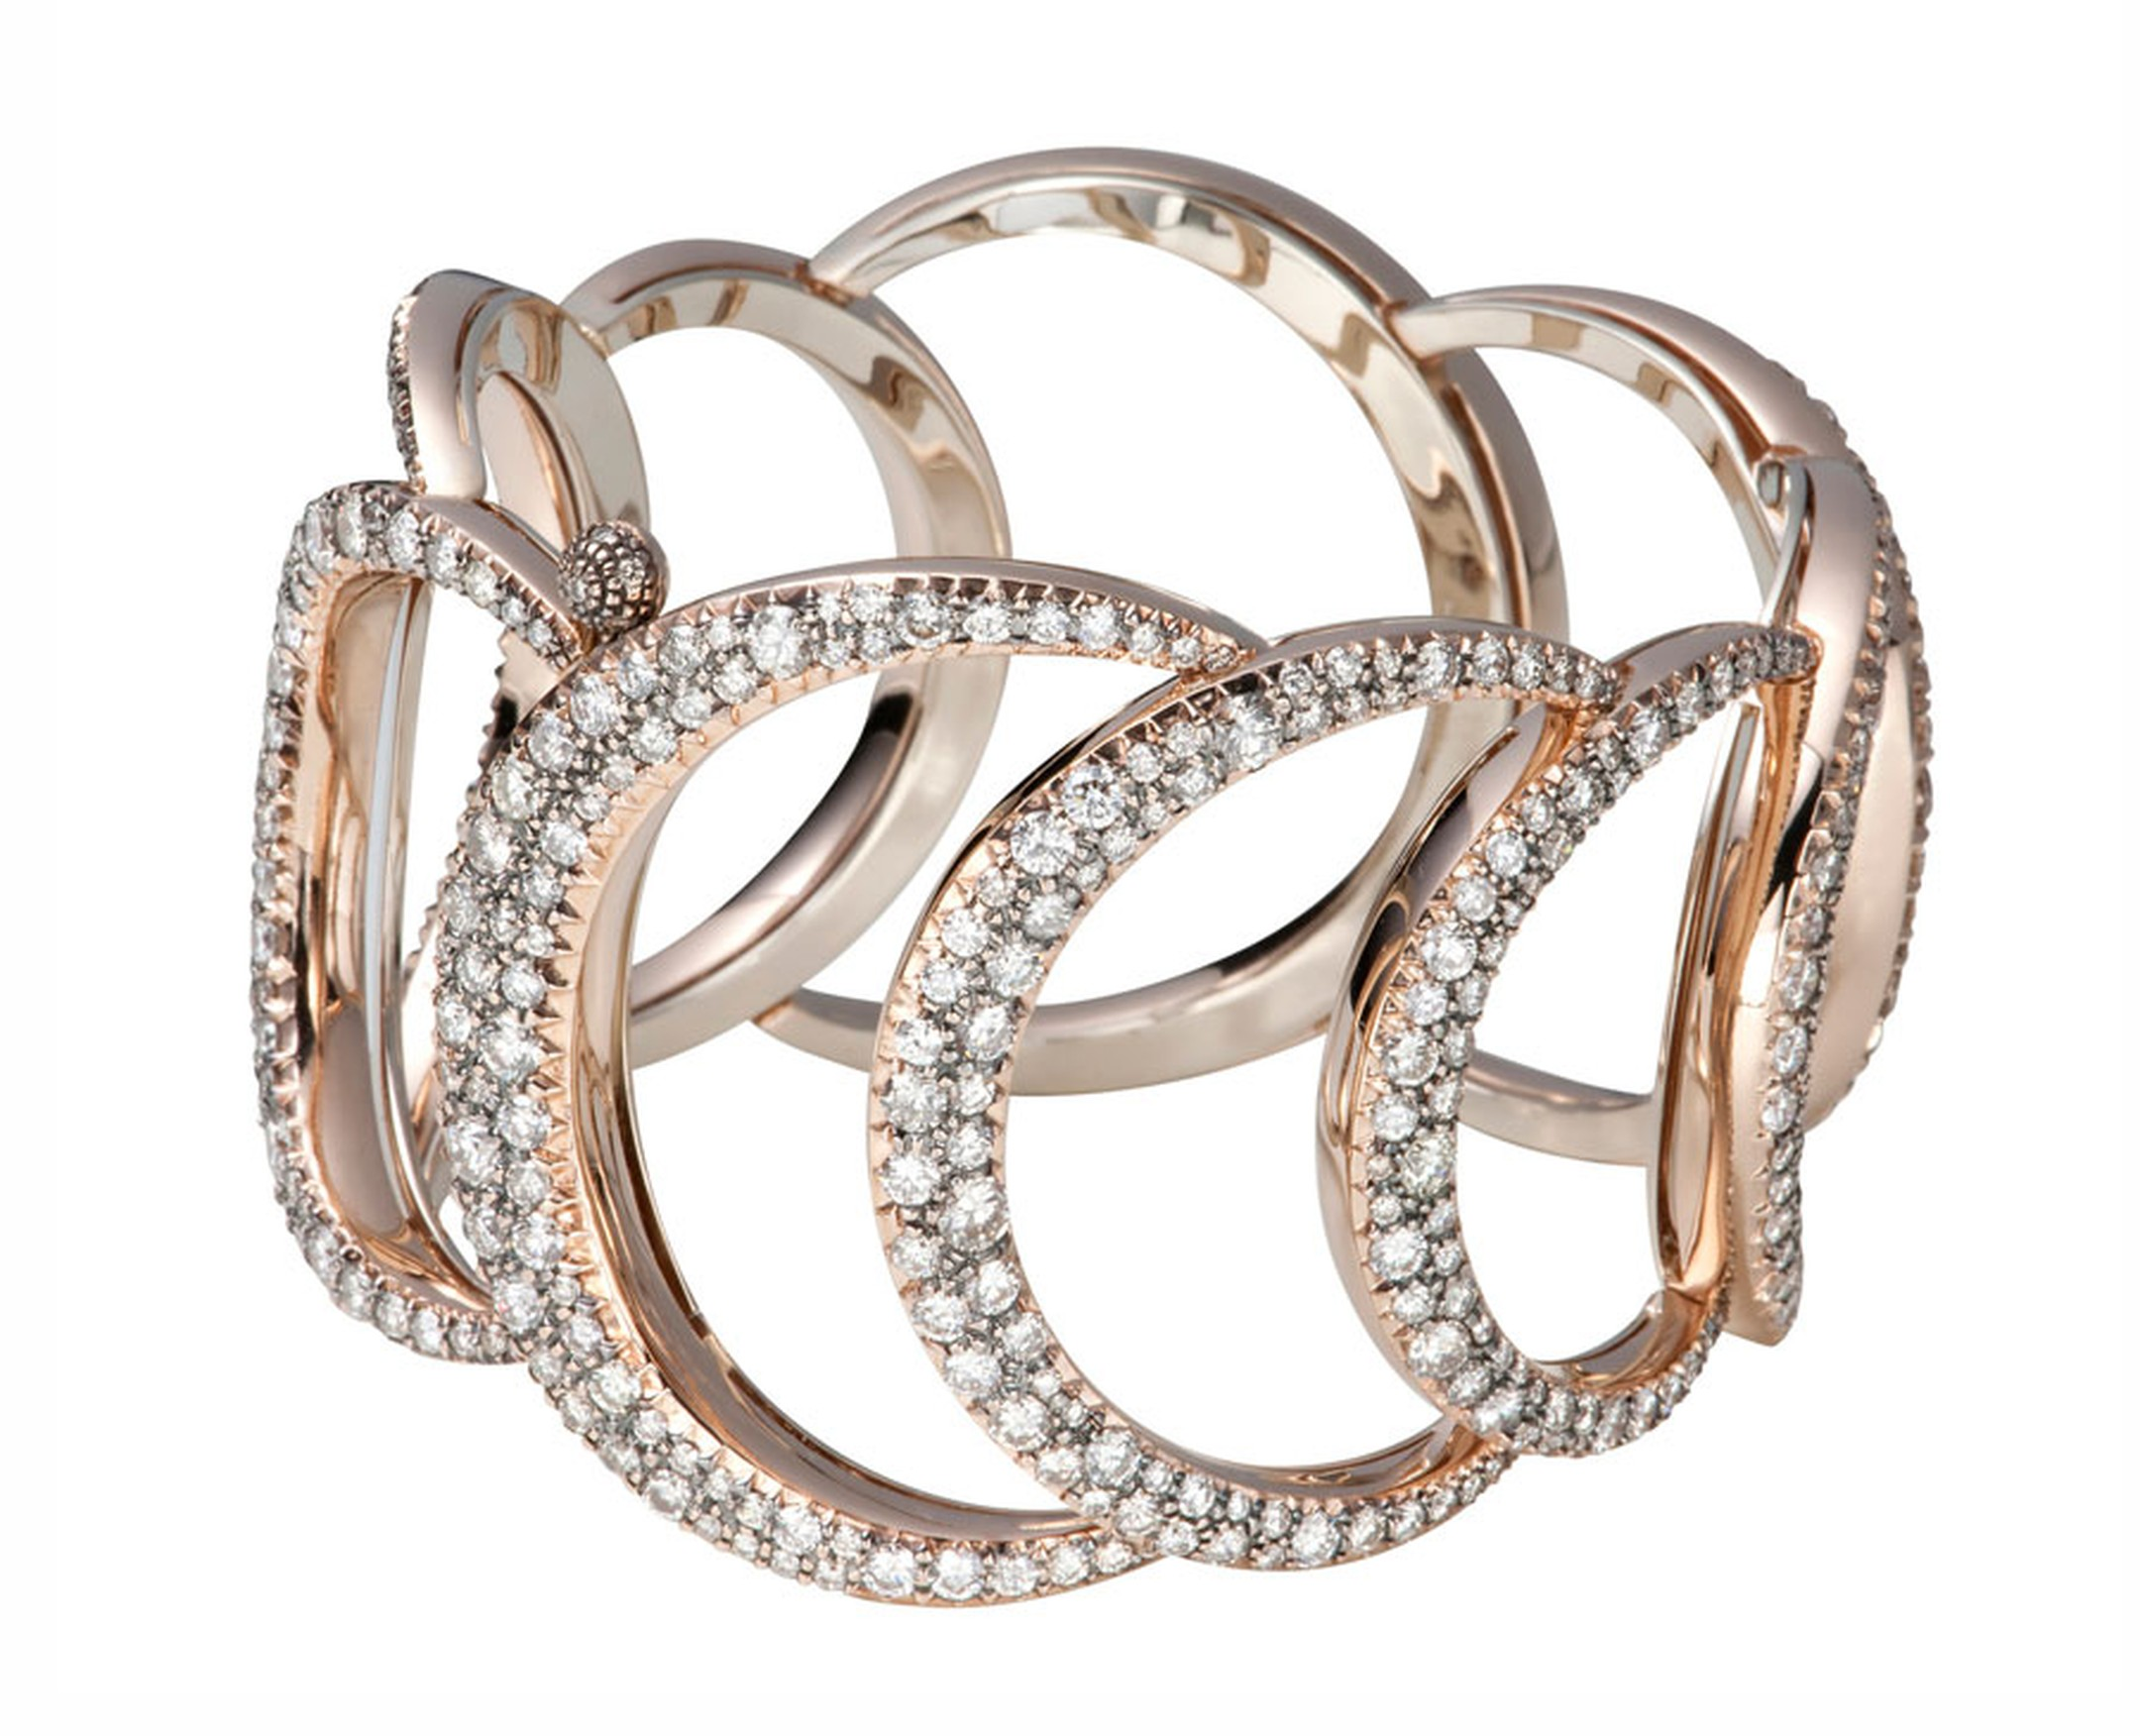 H-Stern-Bracelet-in-rose-and-Noble-gold-with-diamonds